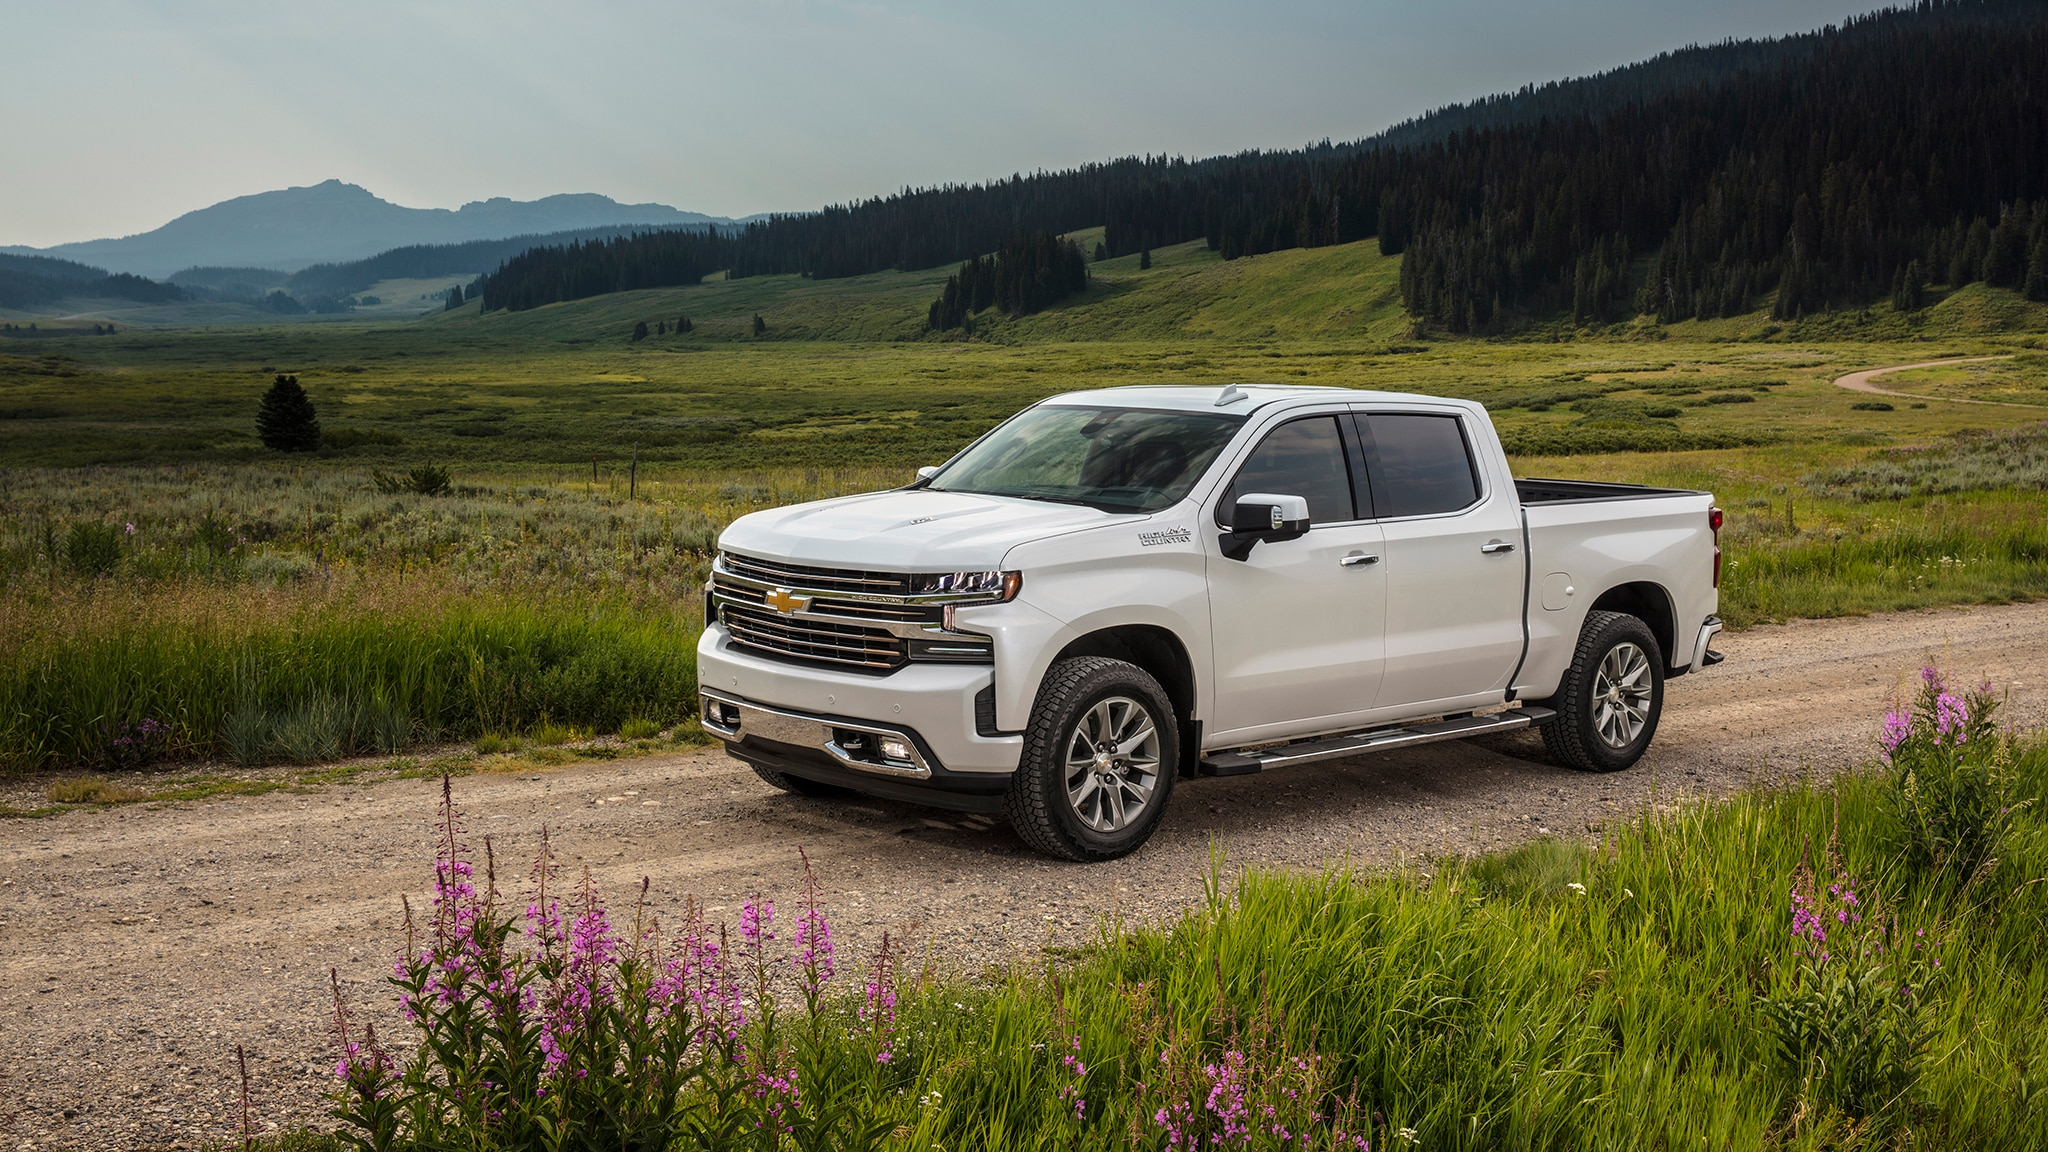 Chevrolet High Country 2018 >> 2019 Chevrolet Silverado High Country First Drive Review | Automobile Magazine